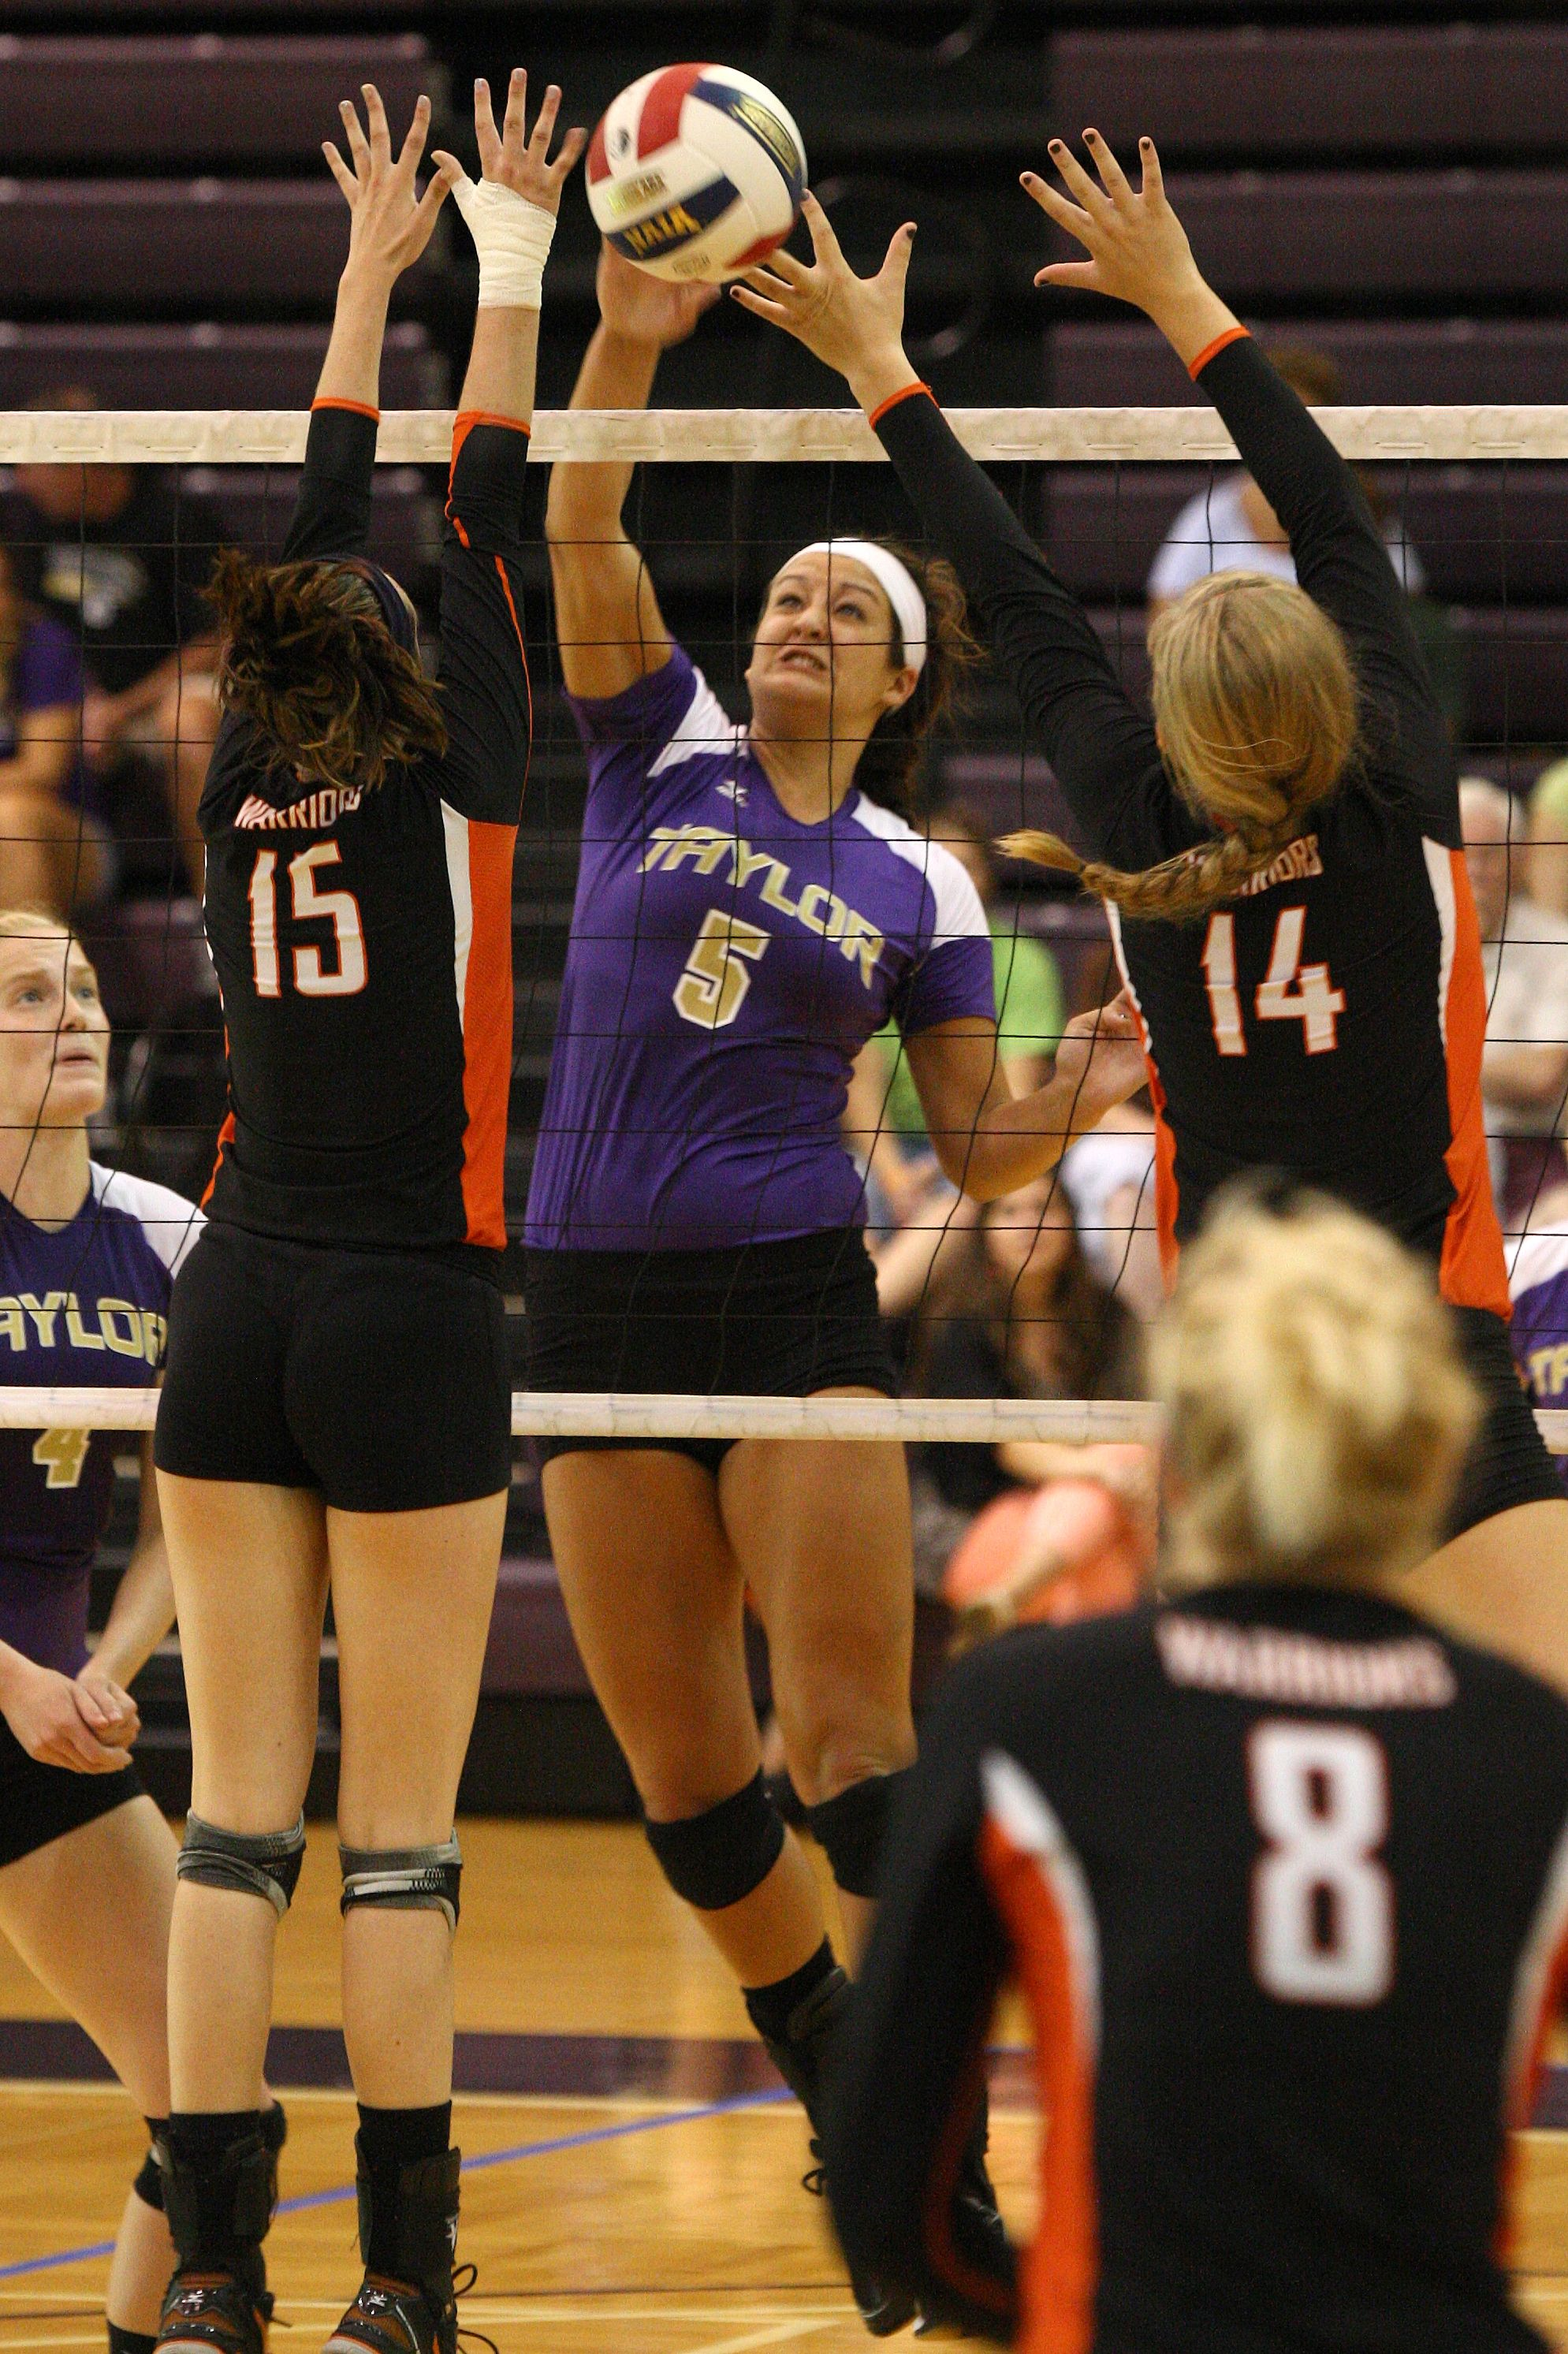 Volleyball At Taylor University Volleyball Tayloru Indiana Christian College Indiana Holistic Education